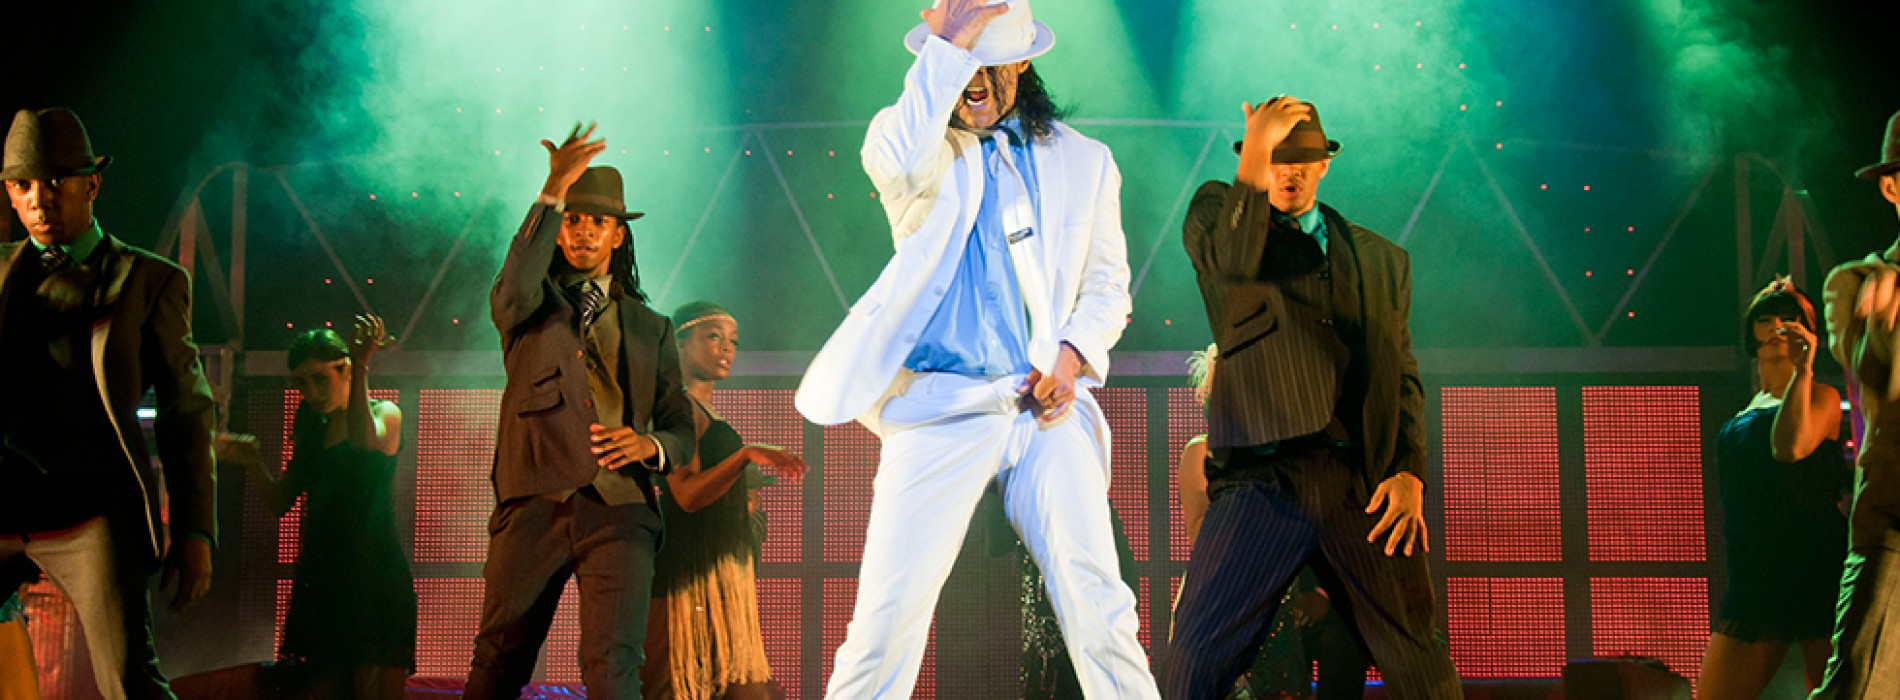 Back by Popular Demand: THRILLER LIVE, a Sensational Celebration of the Music of Michael Jackson, Returns to The Parisian Macao